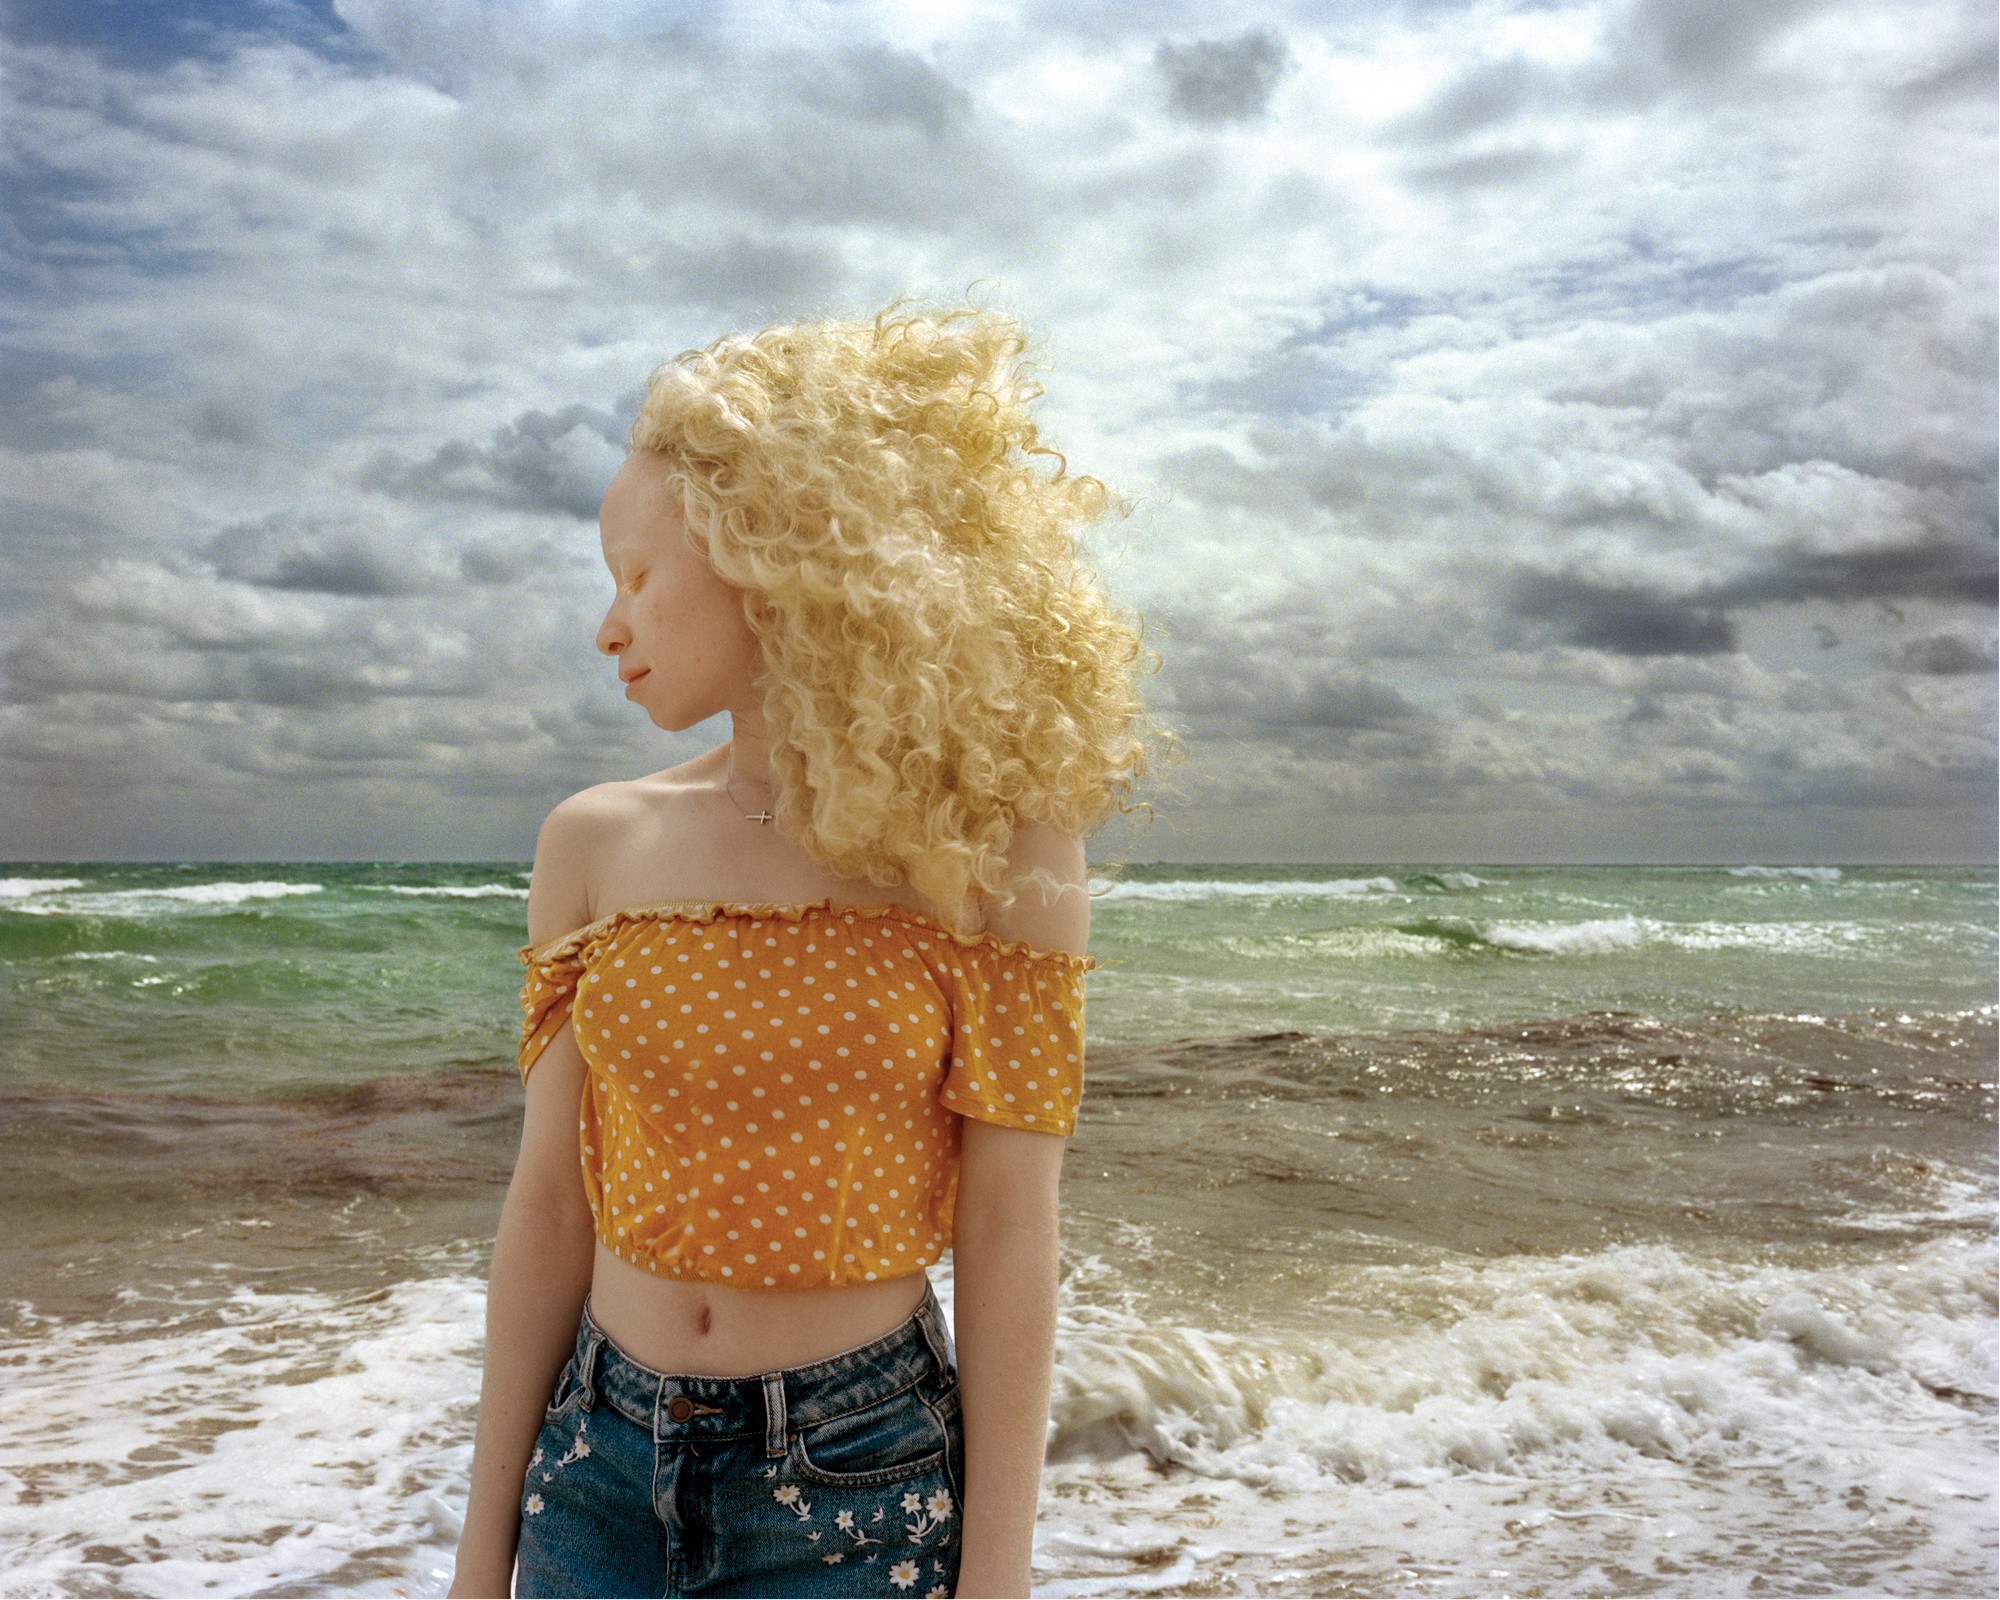 In front of a stormy ocean, a woman with light skin and blonde, wind-blown hair stands with head turned in profile and eyes closed.